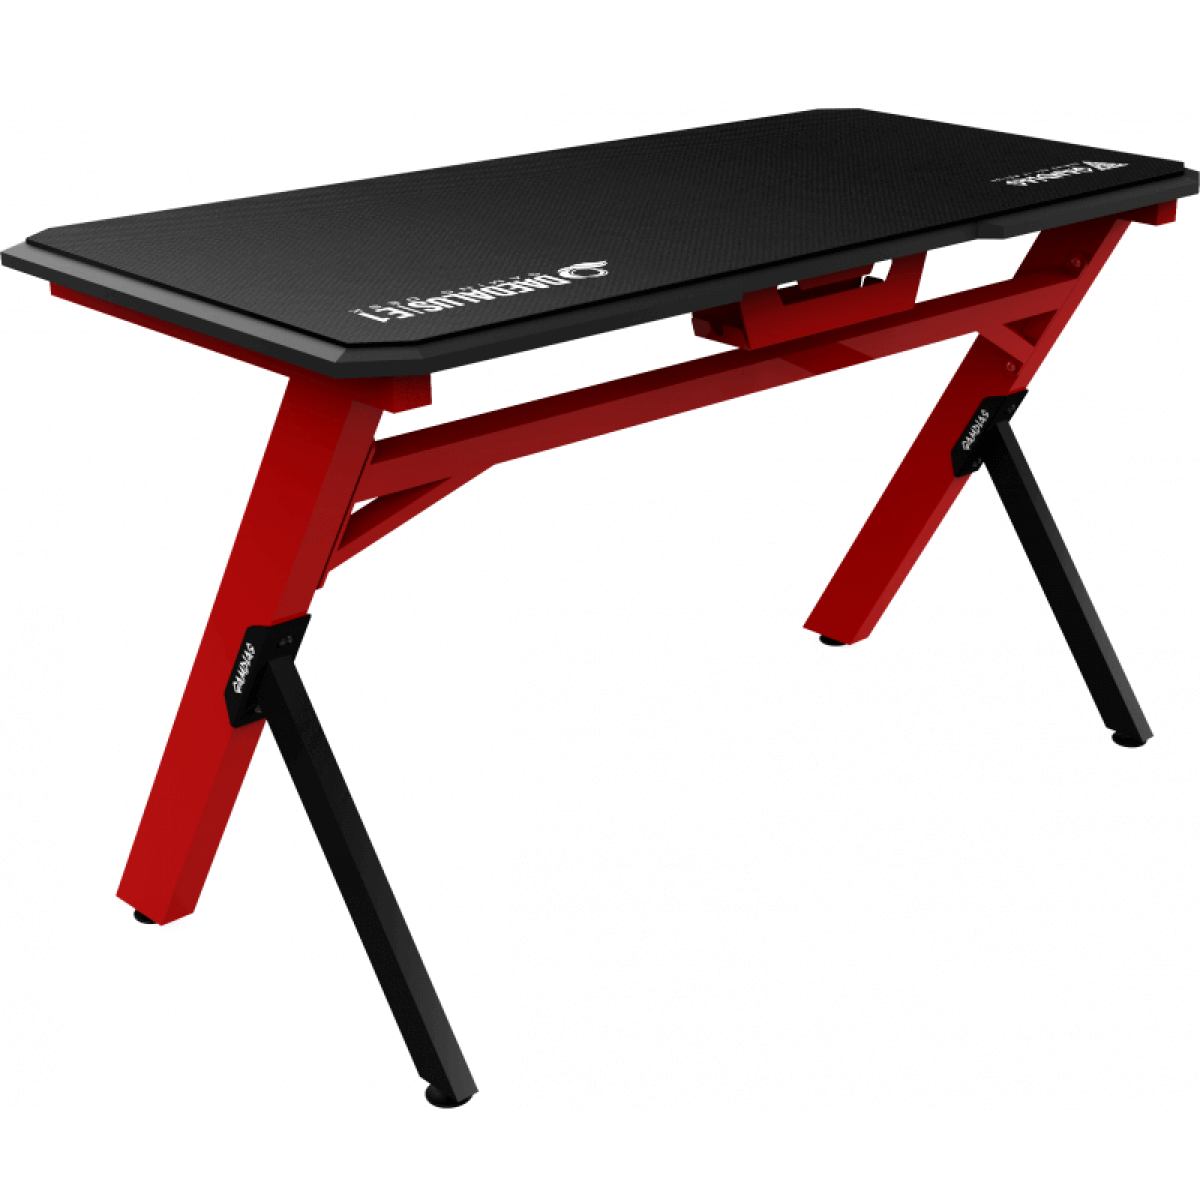 Mesa Gamer Gamdias Daedalus E1, 120cm, Red